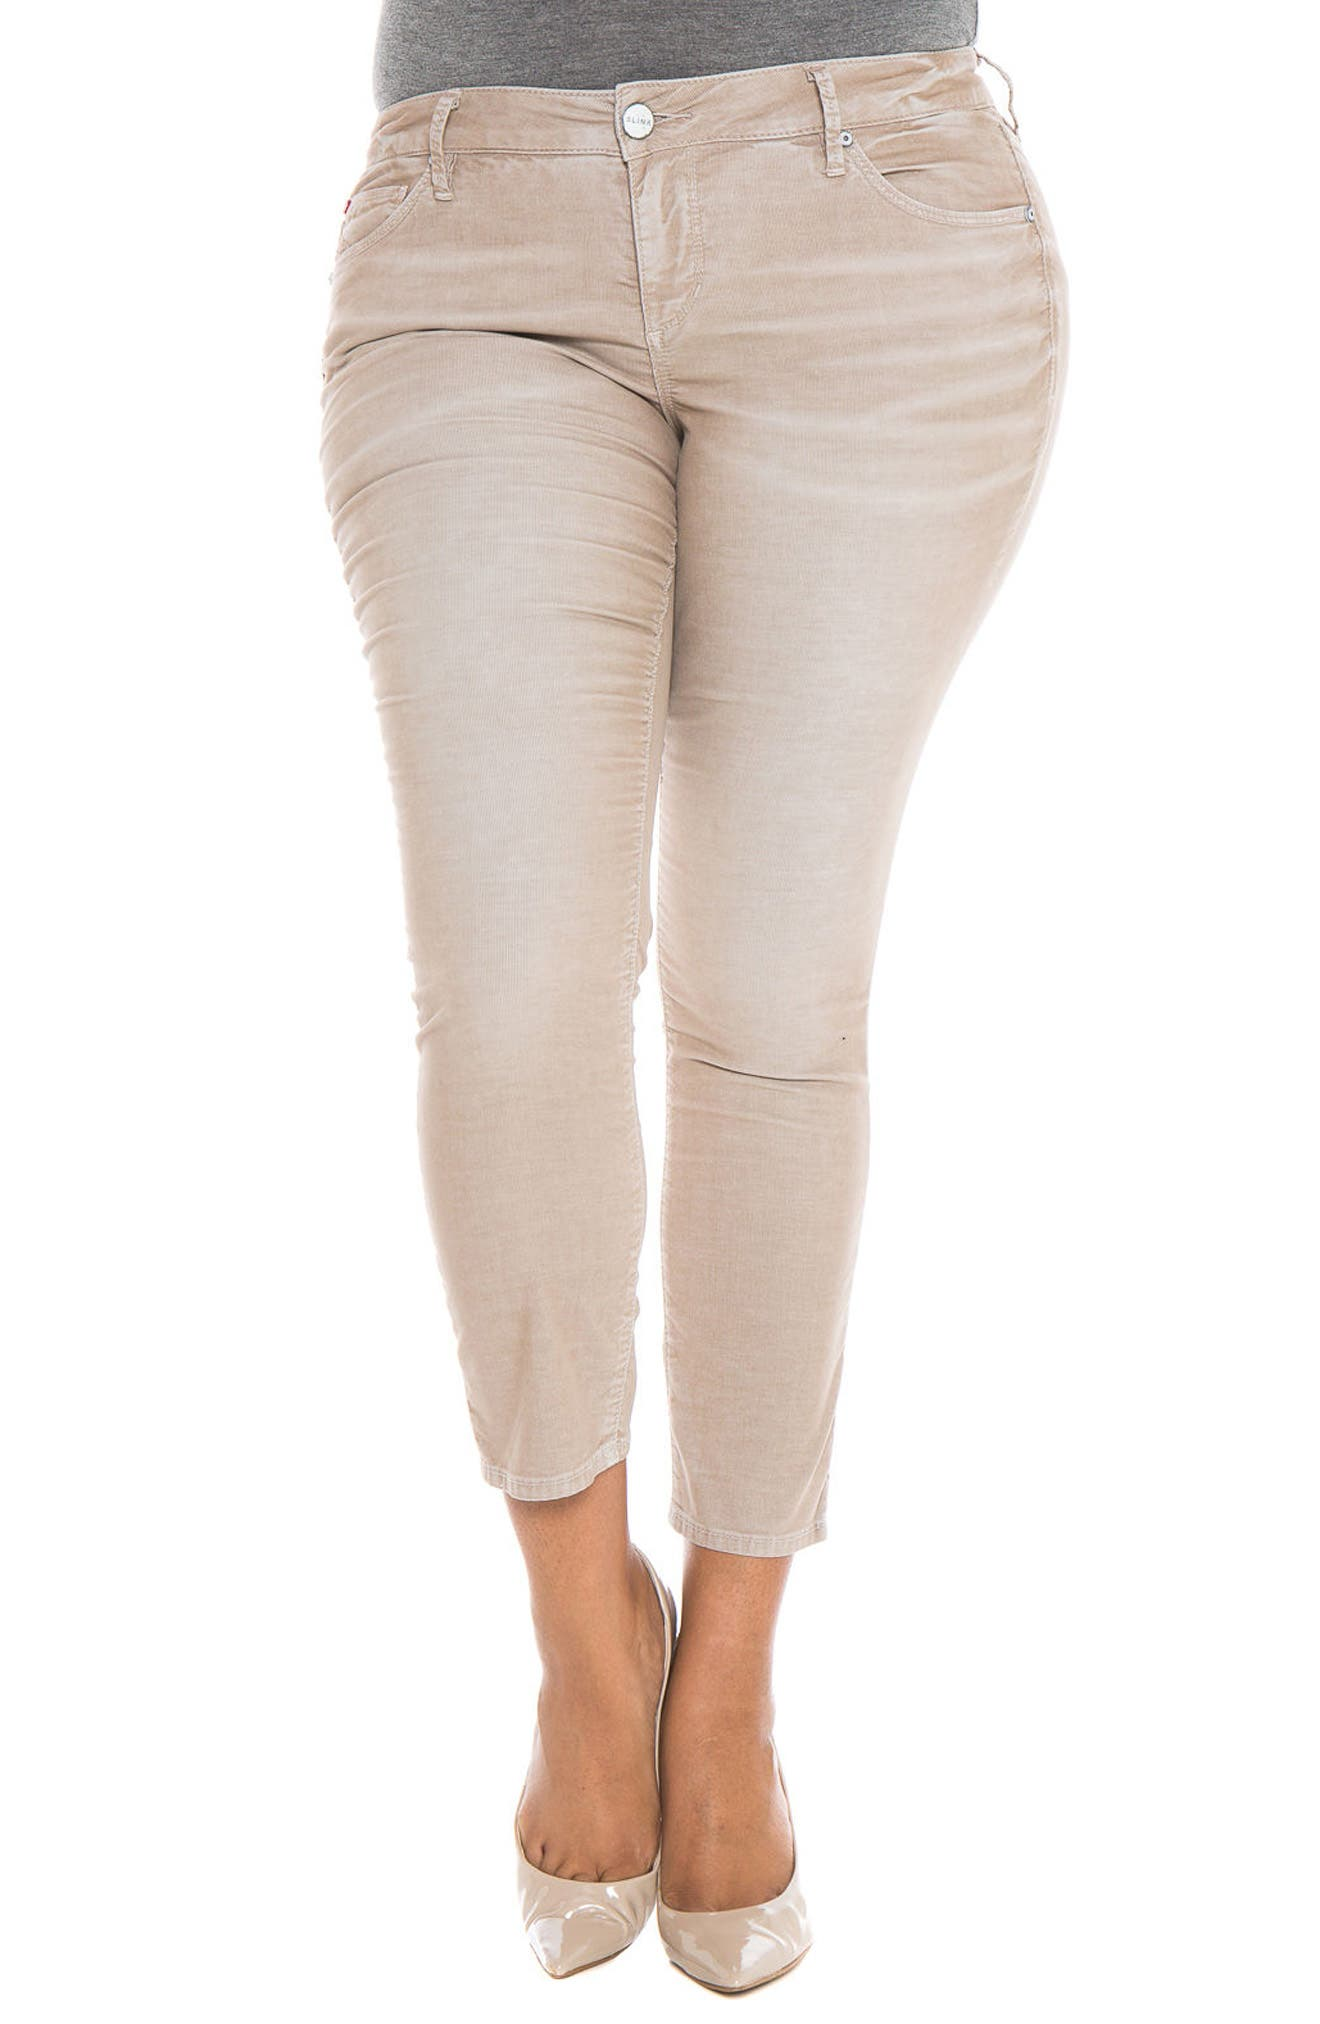 SLINK Jeans Stretch Corduroy Cropped Skinny Pants (Plus Size)